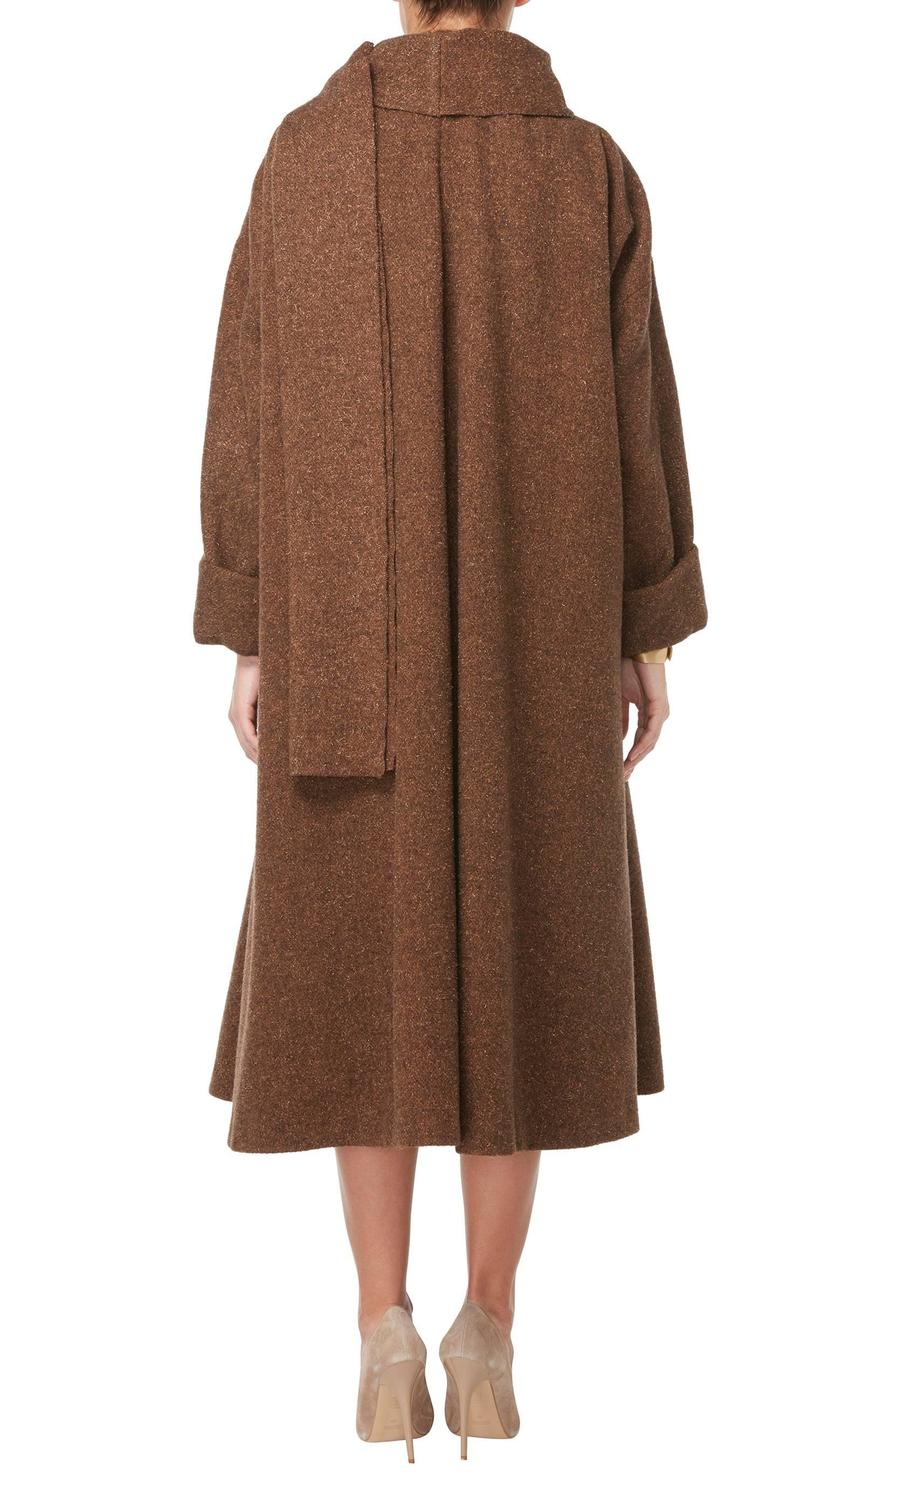 Guy laroche haute couture brown skirt suit circa 1957 for for Haute couture sale